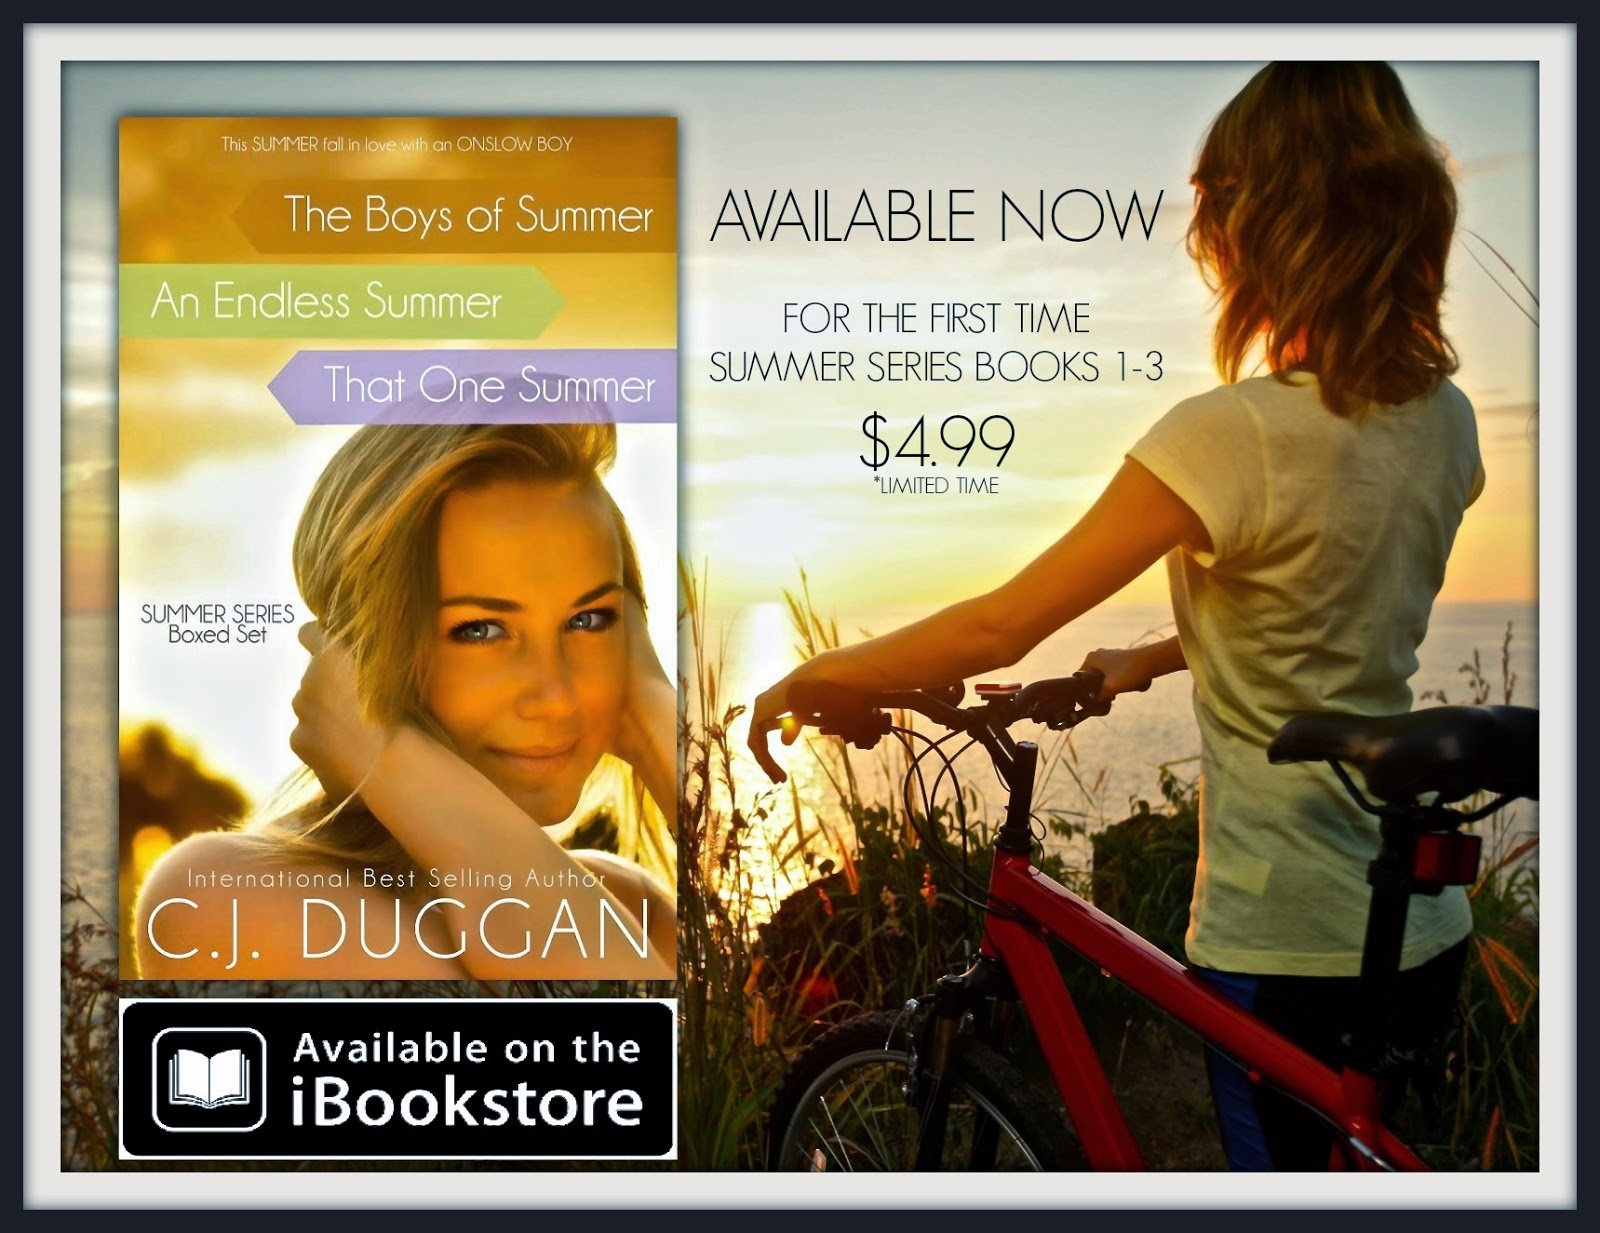 Summer Series Boxed Set Sales Promo